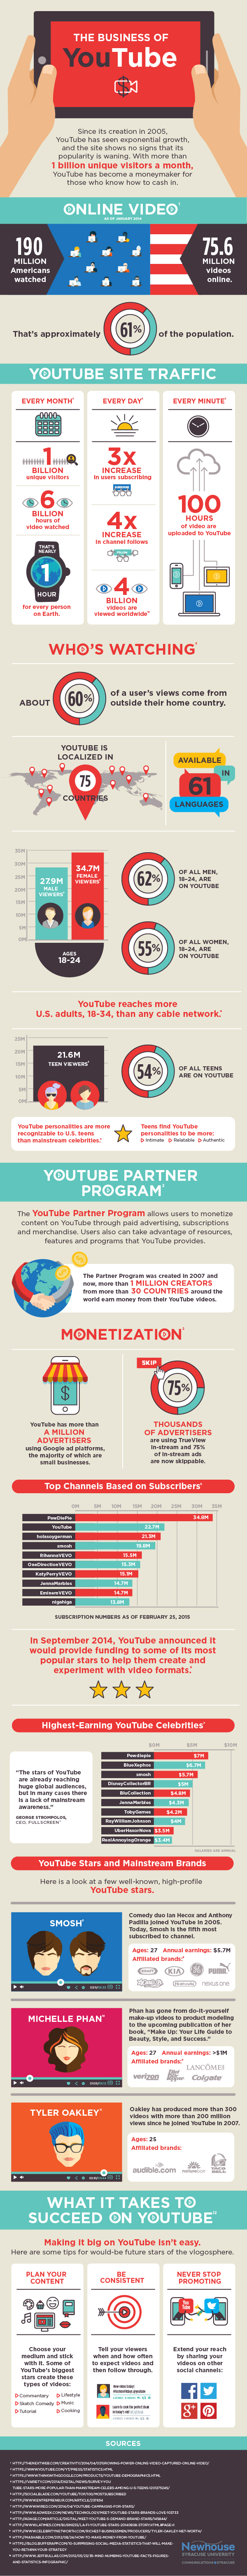 Data visualizations showing the business, growth, and popularity of Youtube.